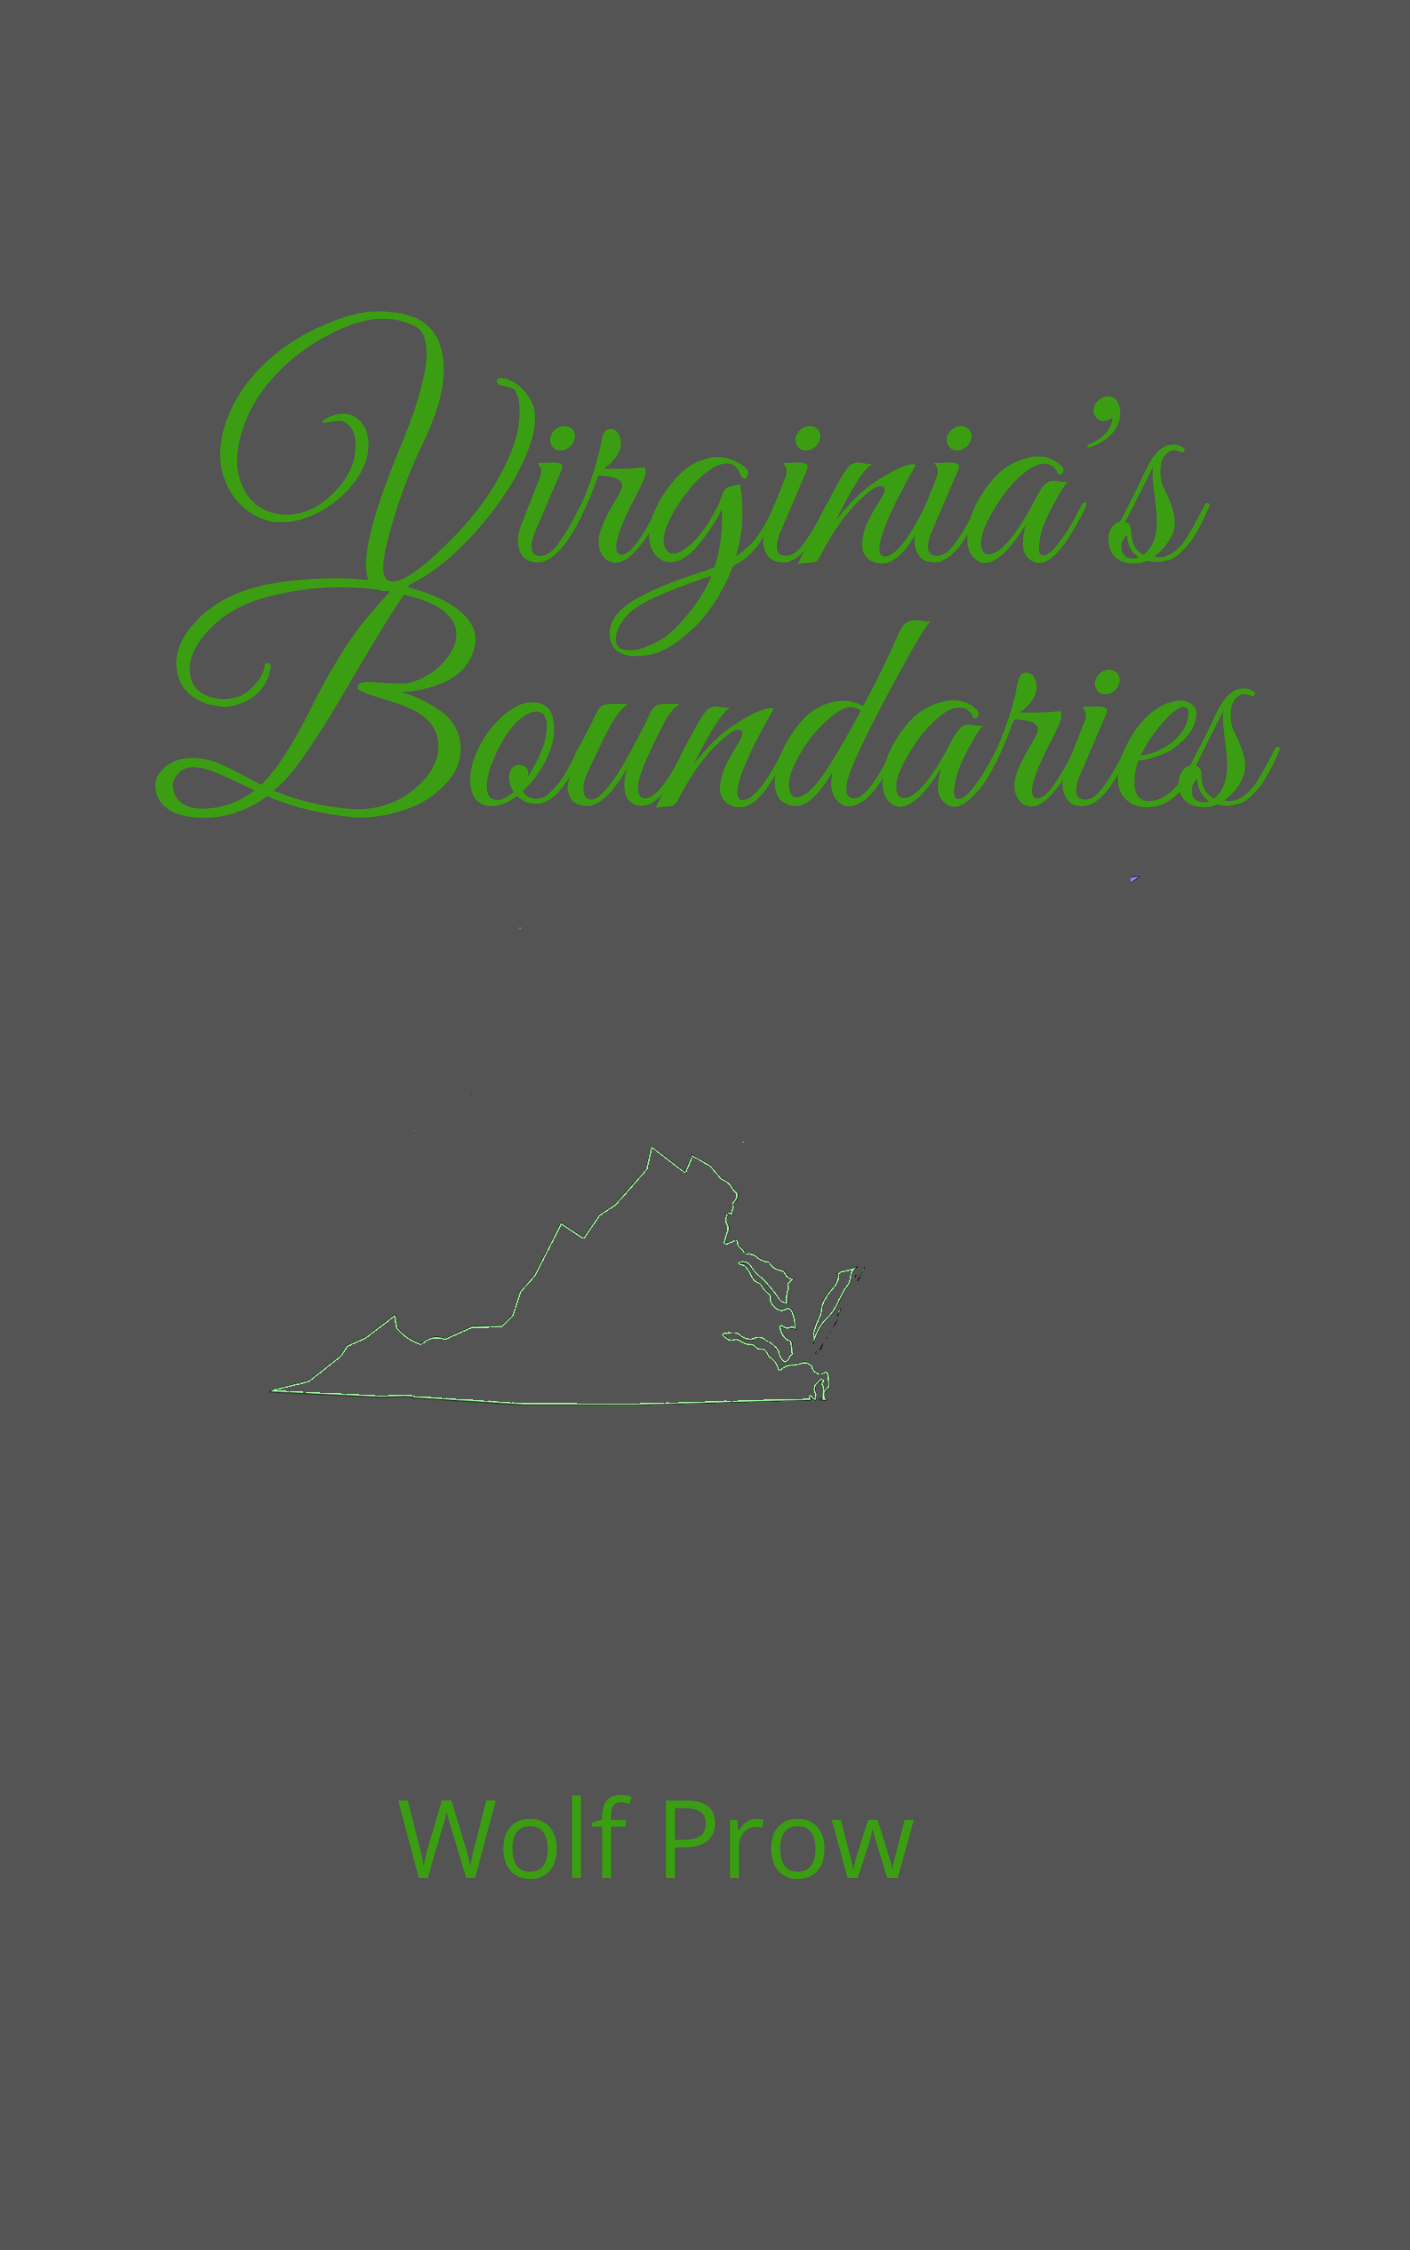 Virginia's Boundaries